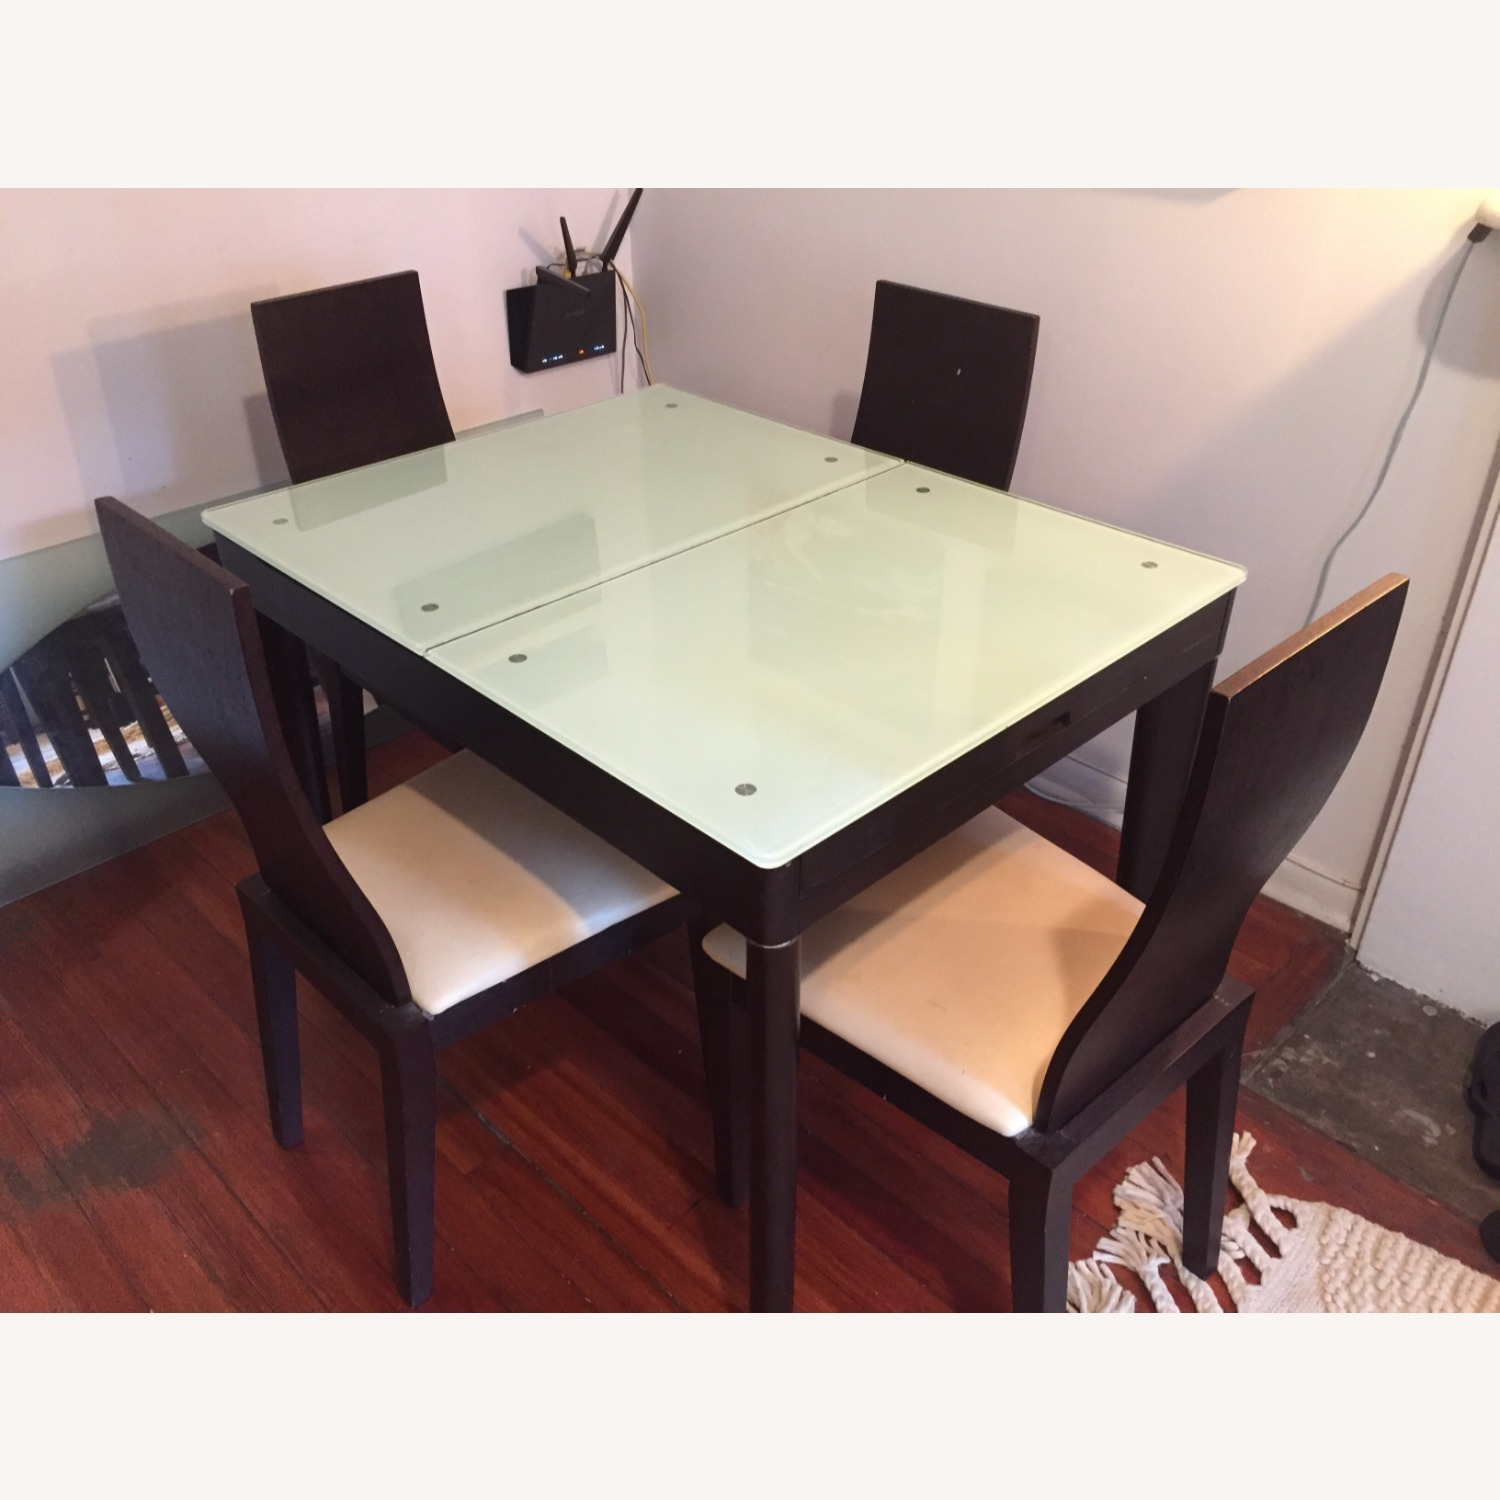 Calligaris Italian Extendable Dining Table Set with 4 Chairs - image-3